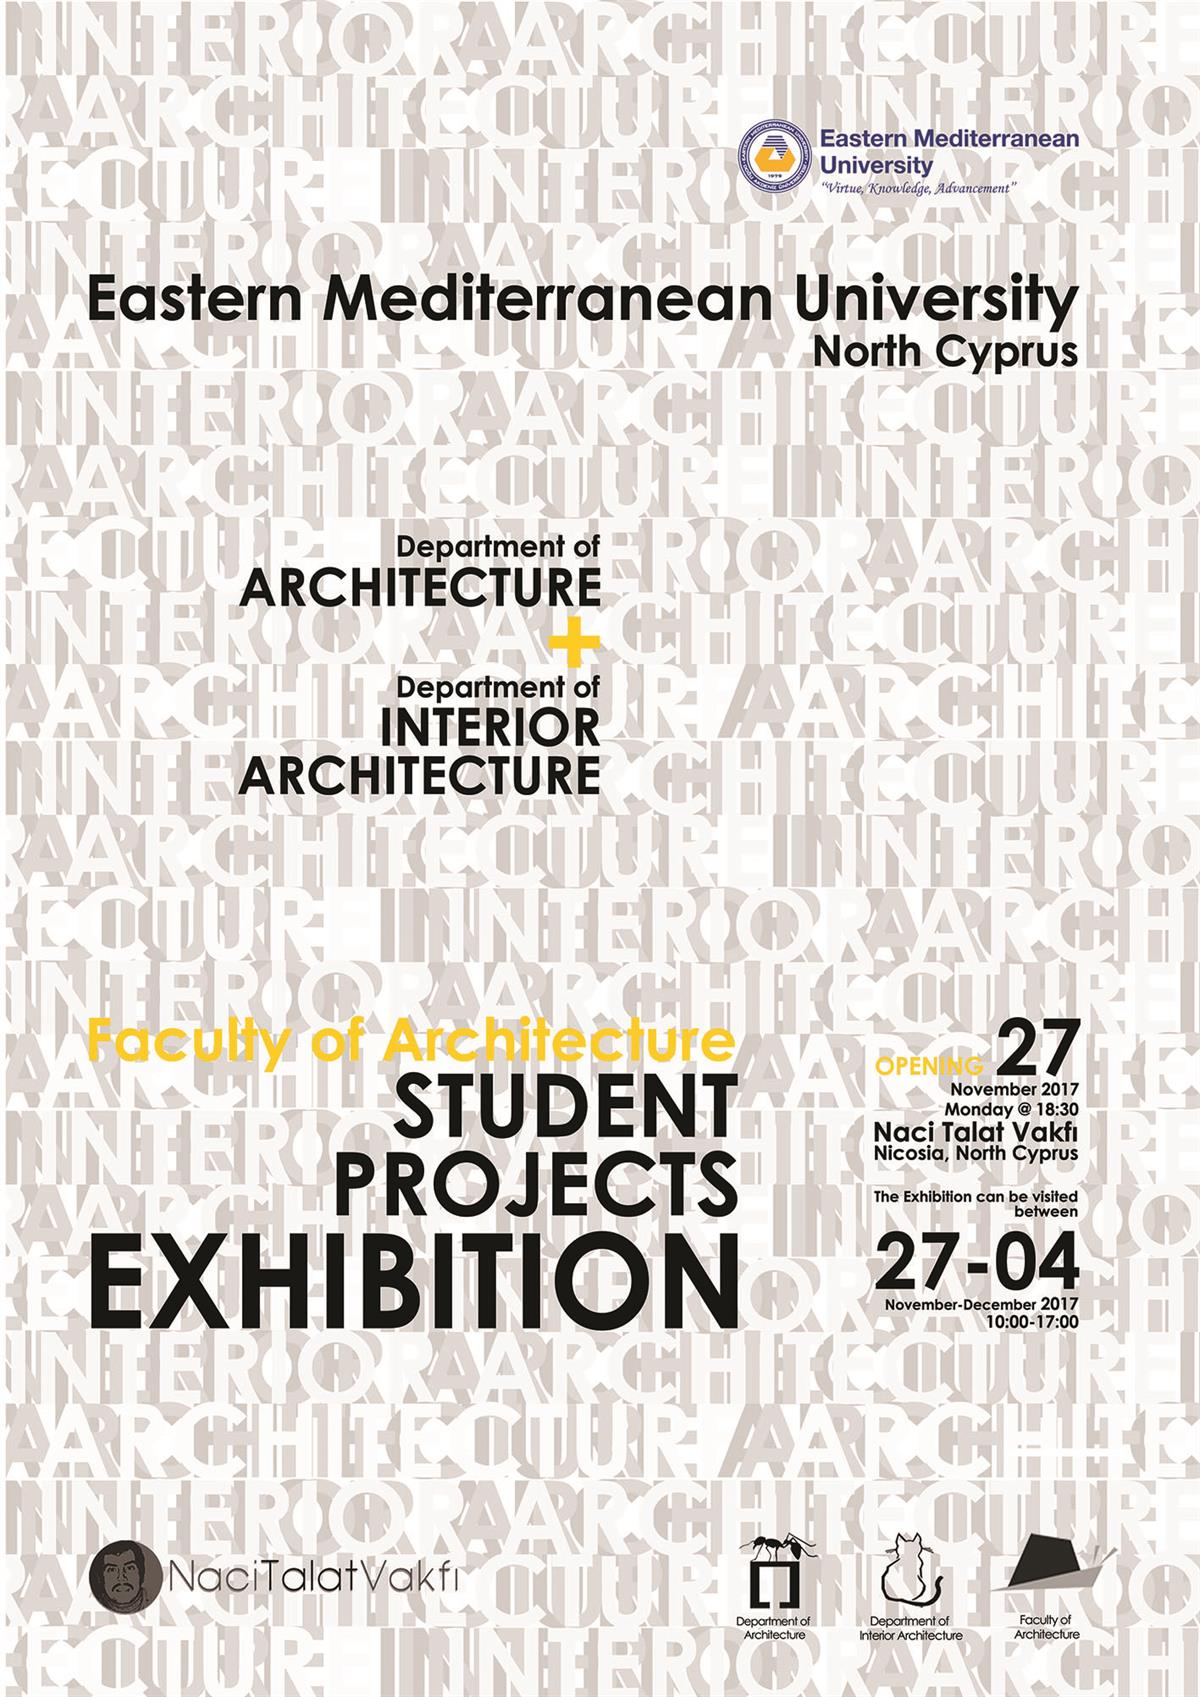 Student project exibition